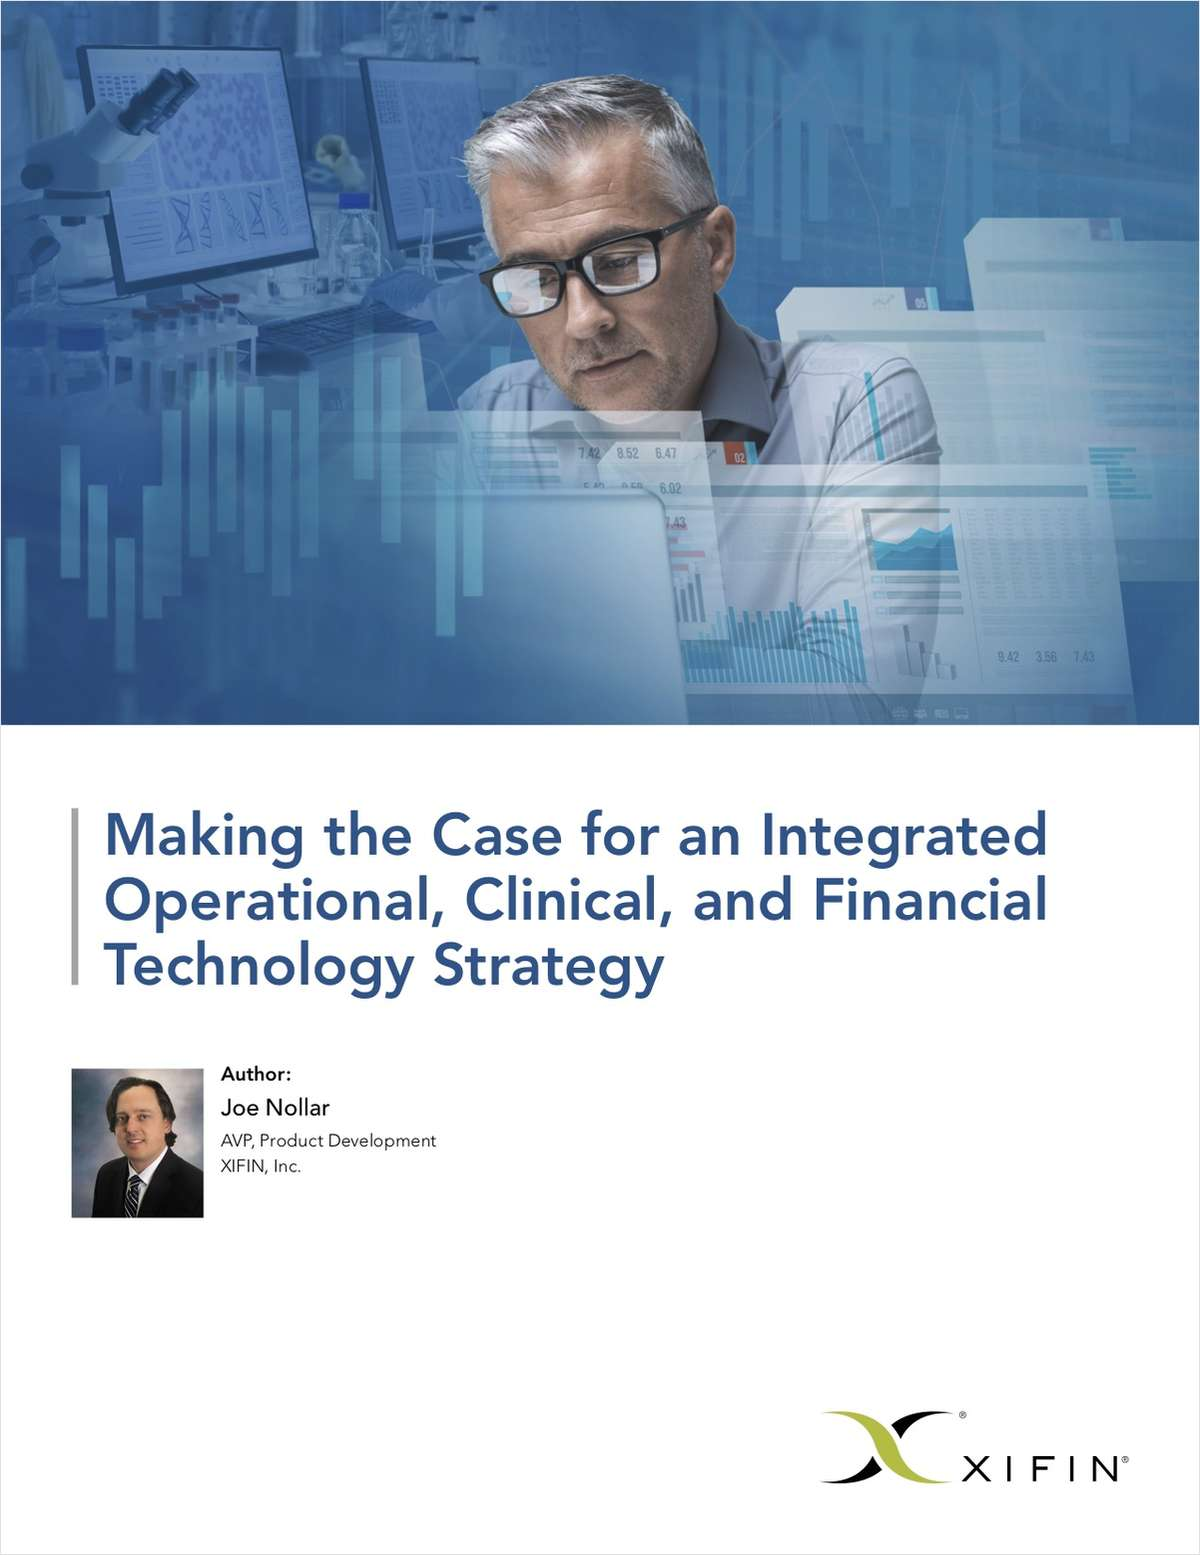 Making the Case for an Integrated Operational, Clinical, and Financial Technology Strategy